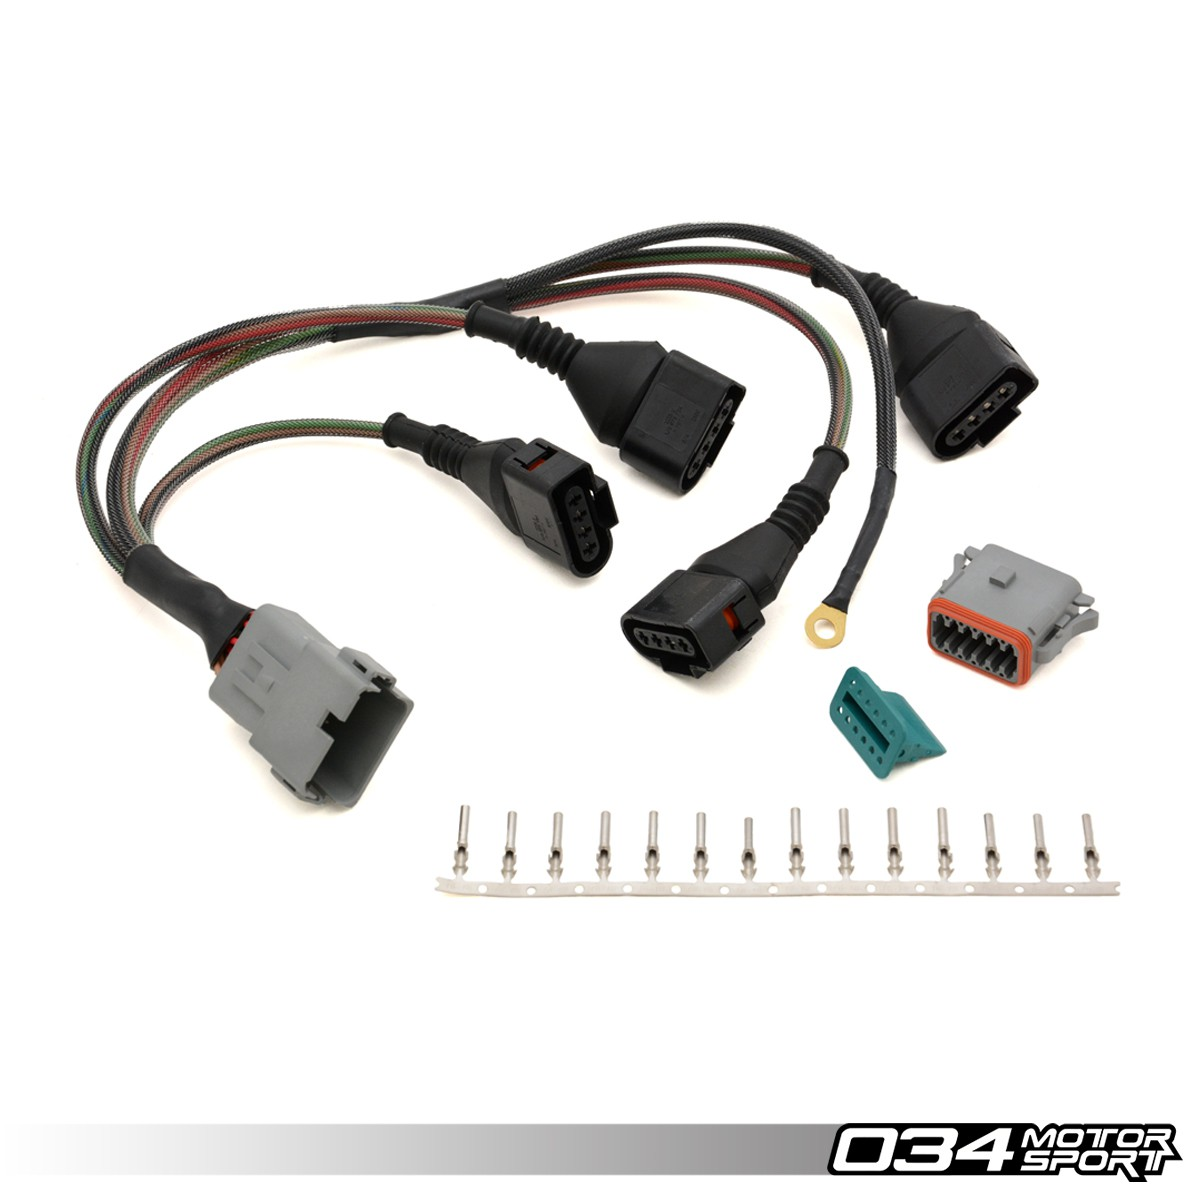 repair update harness audi volkswagen 18t with 4 wire coils 034motorsport 034 701 0004 2 repair update harness, audi volkswagen 1 8t with 4 wire coils how to repair wire harness connector at mr168.co